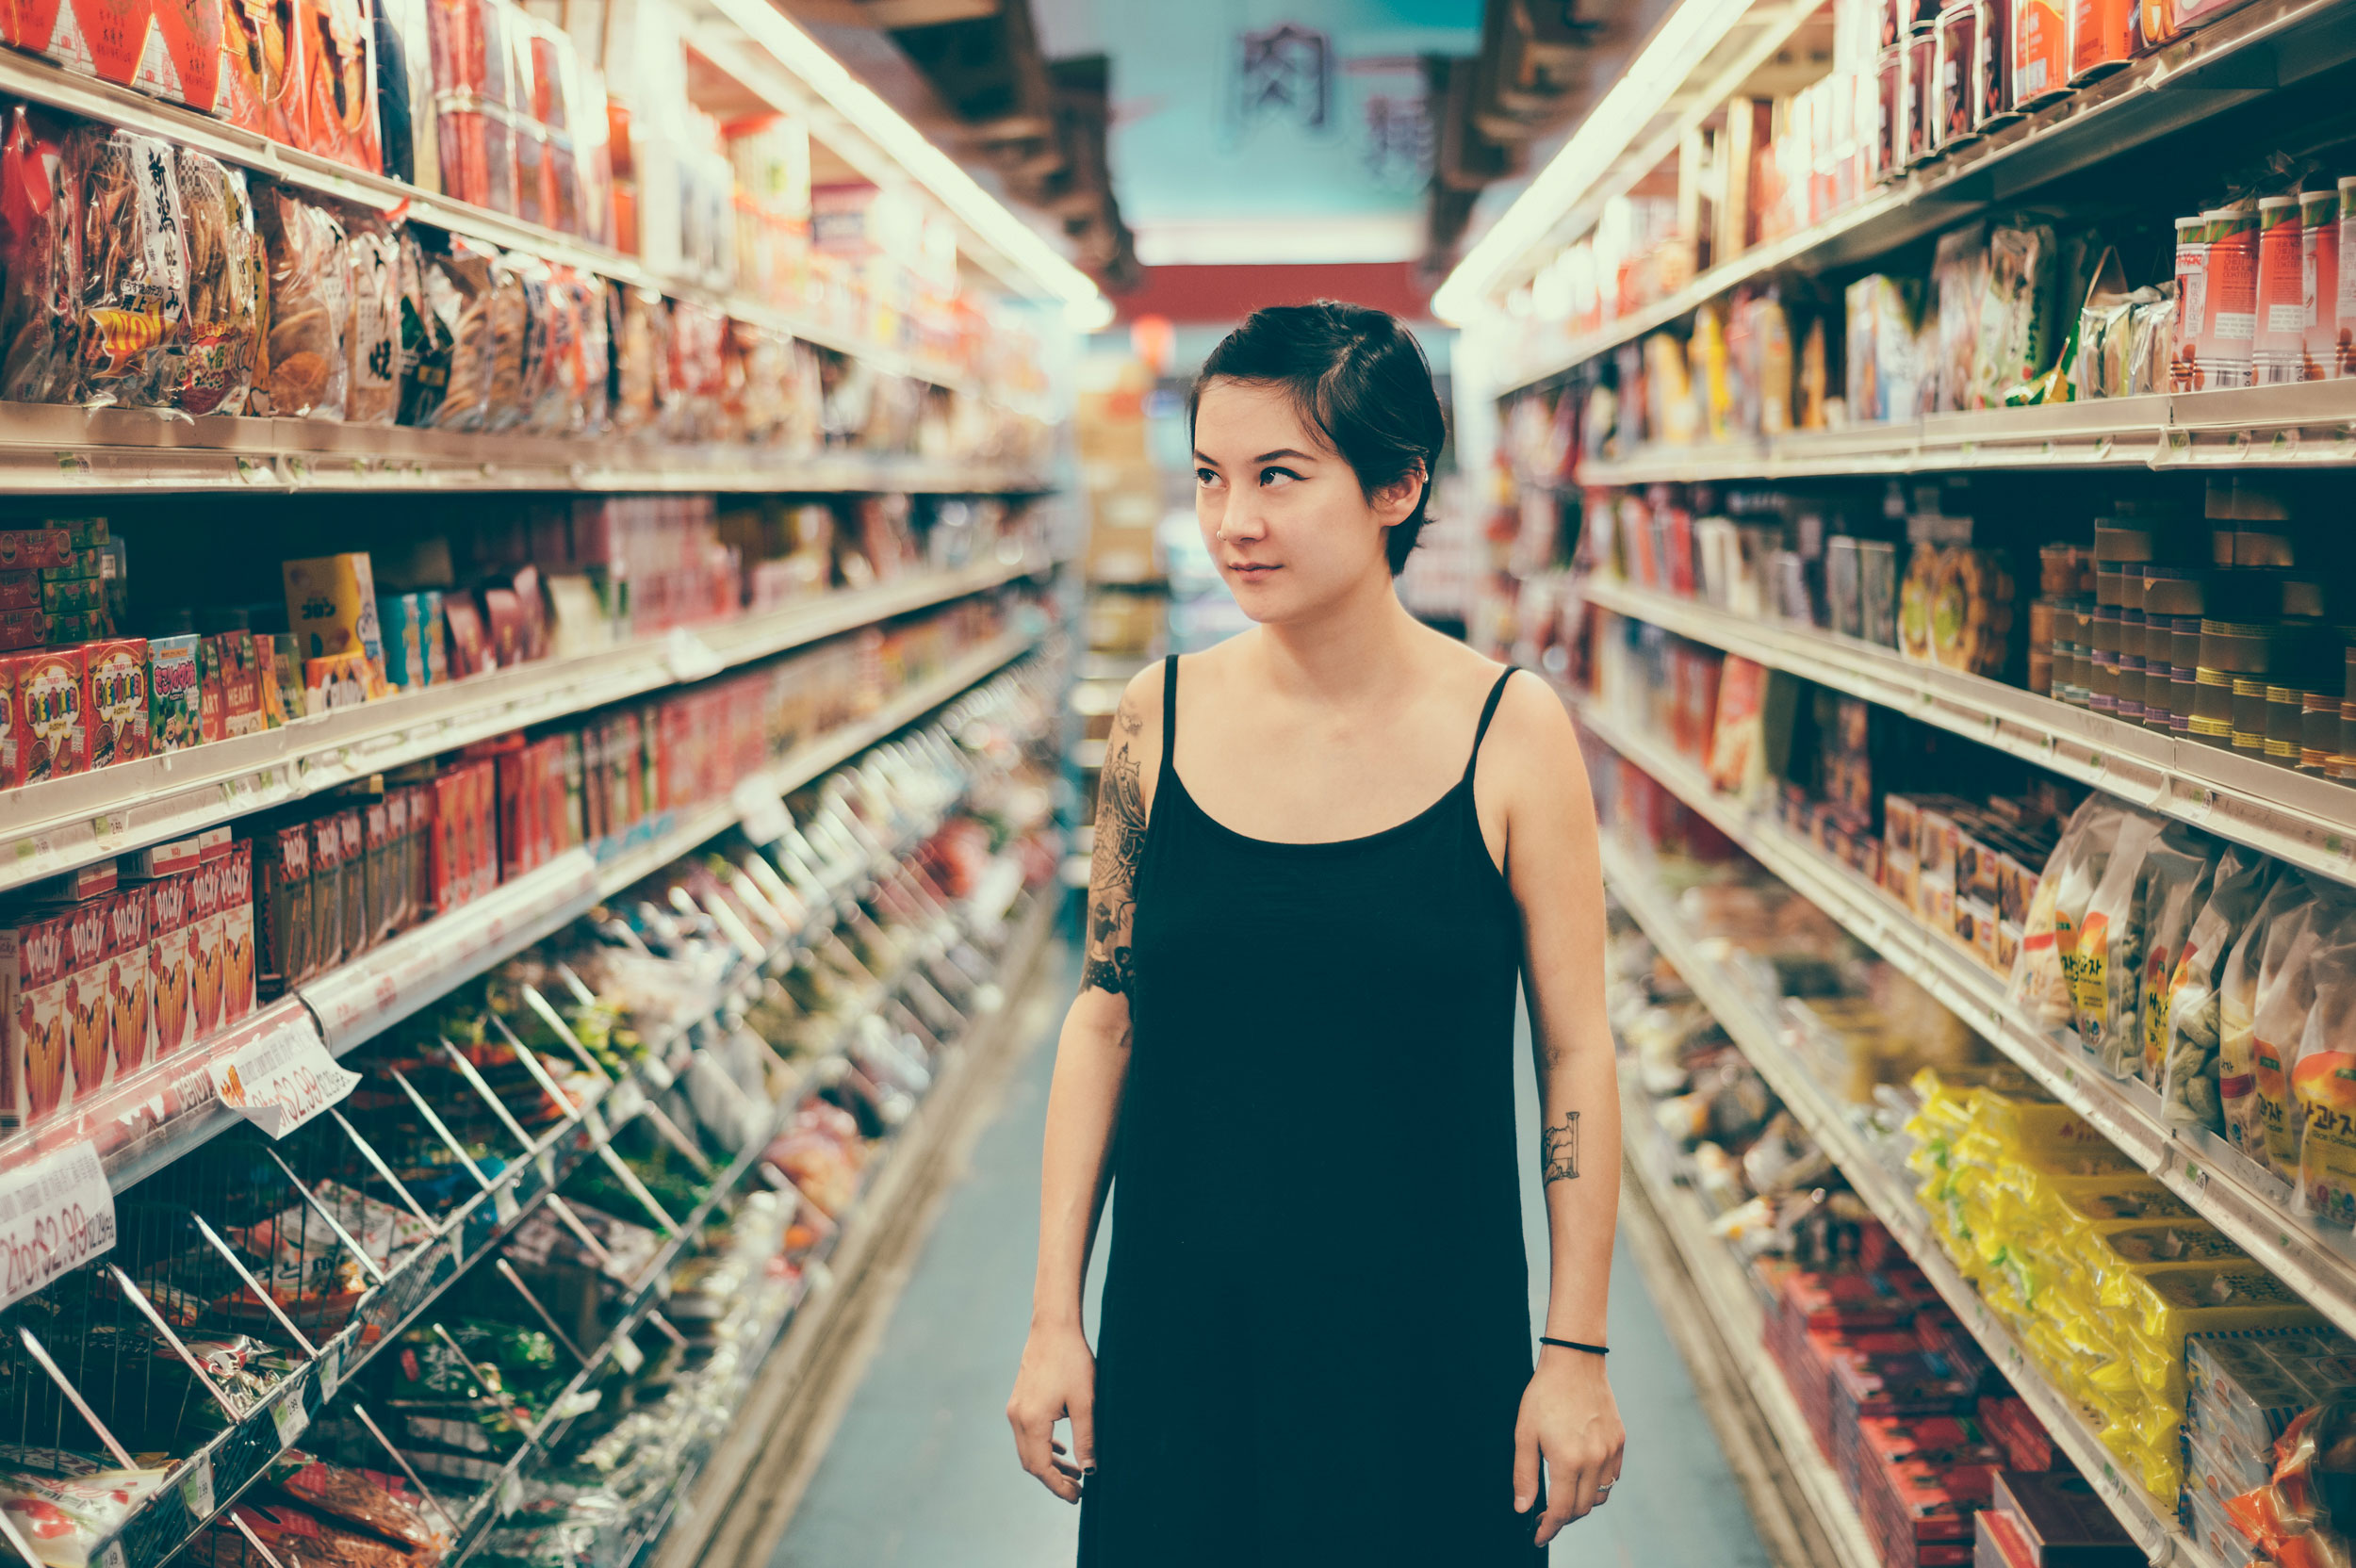 Japanese Breakfast's Michelle Zauner photographed by Chad Kamenshine